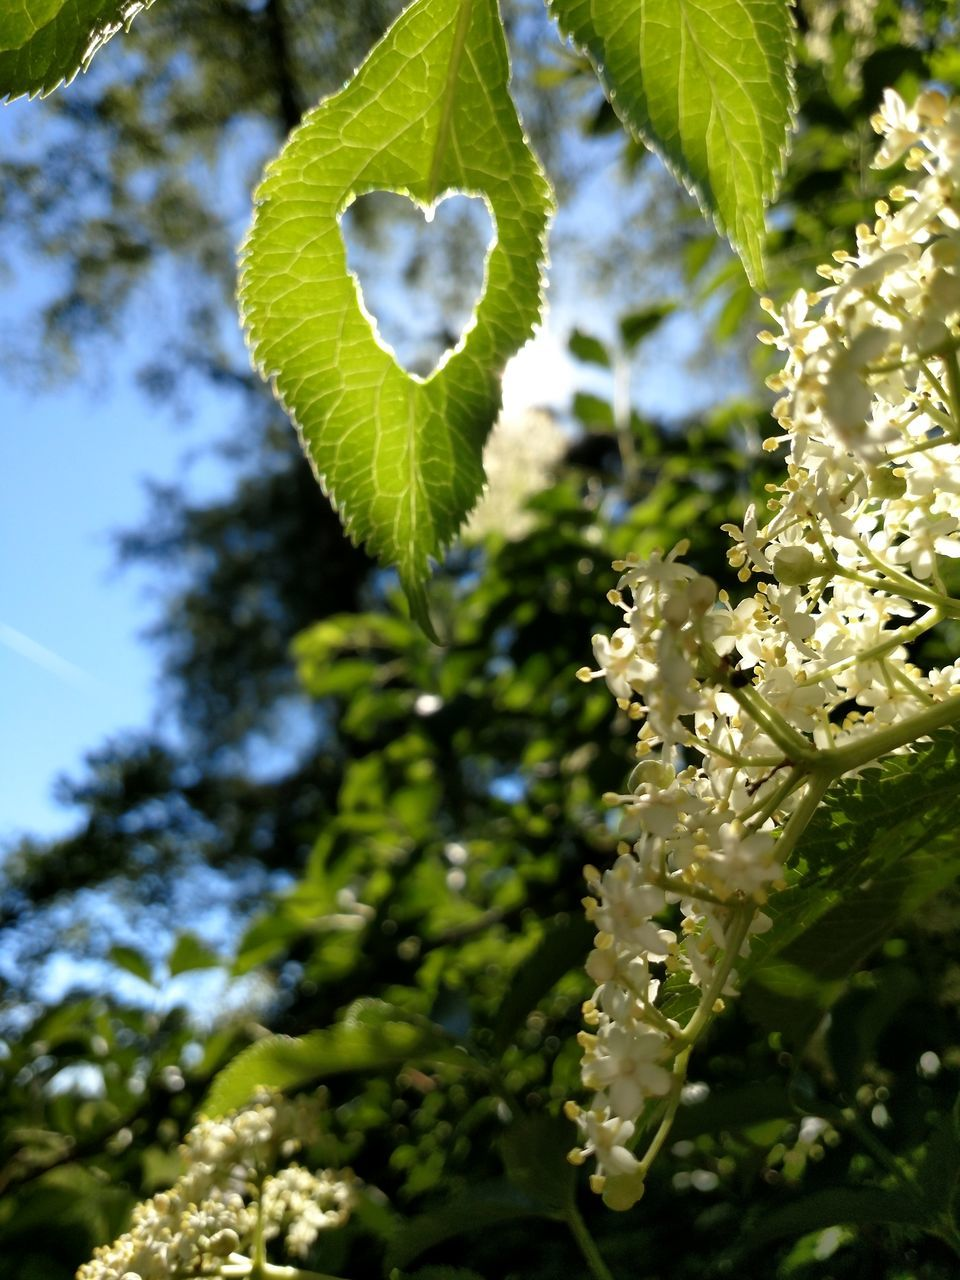 growth, nature, beauty in nature, leaf, fragility, flower, plant, freshness, day, no people, close-up, green color, outdoors, blooming, tree